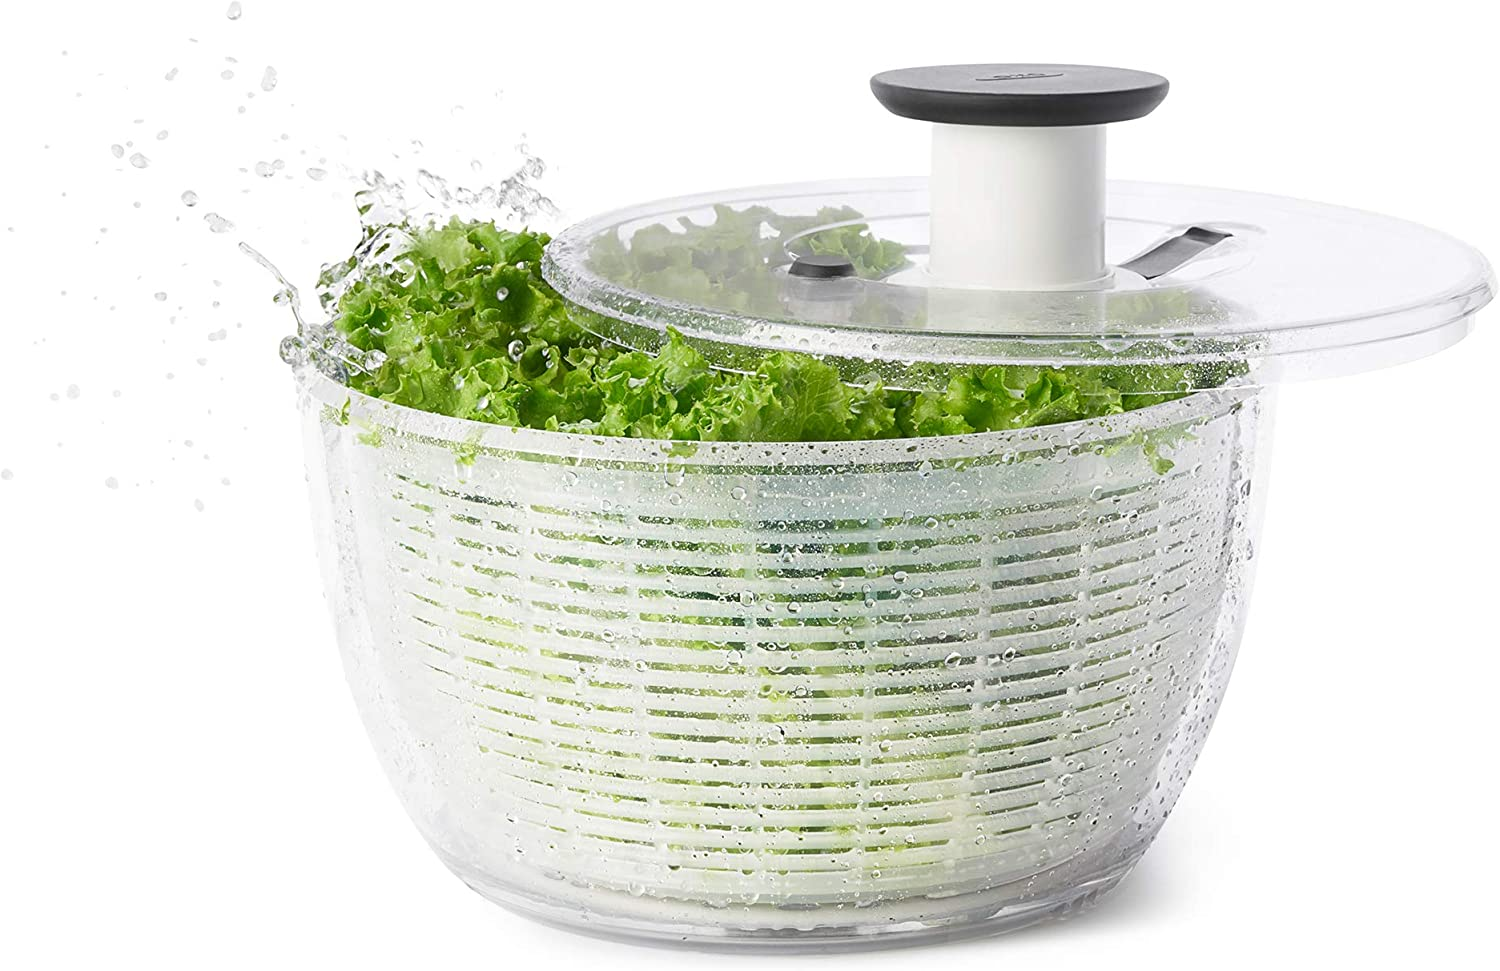 B00004OCKR OXO Good Grips Salad Spinner, Large, Clear 717W7xmn61L